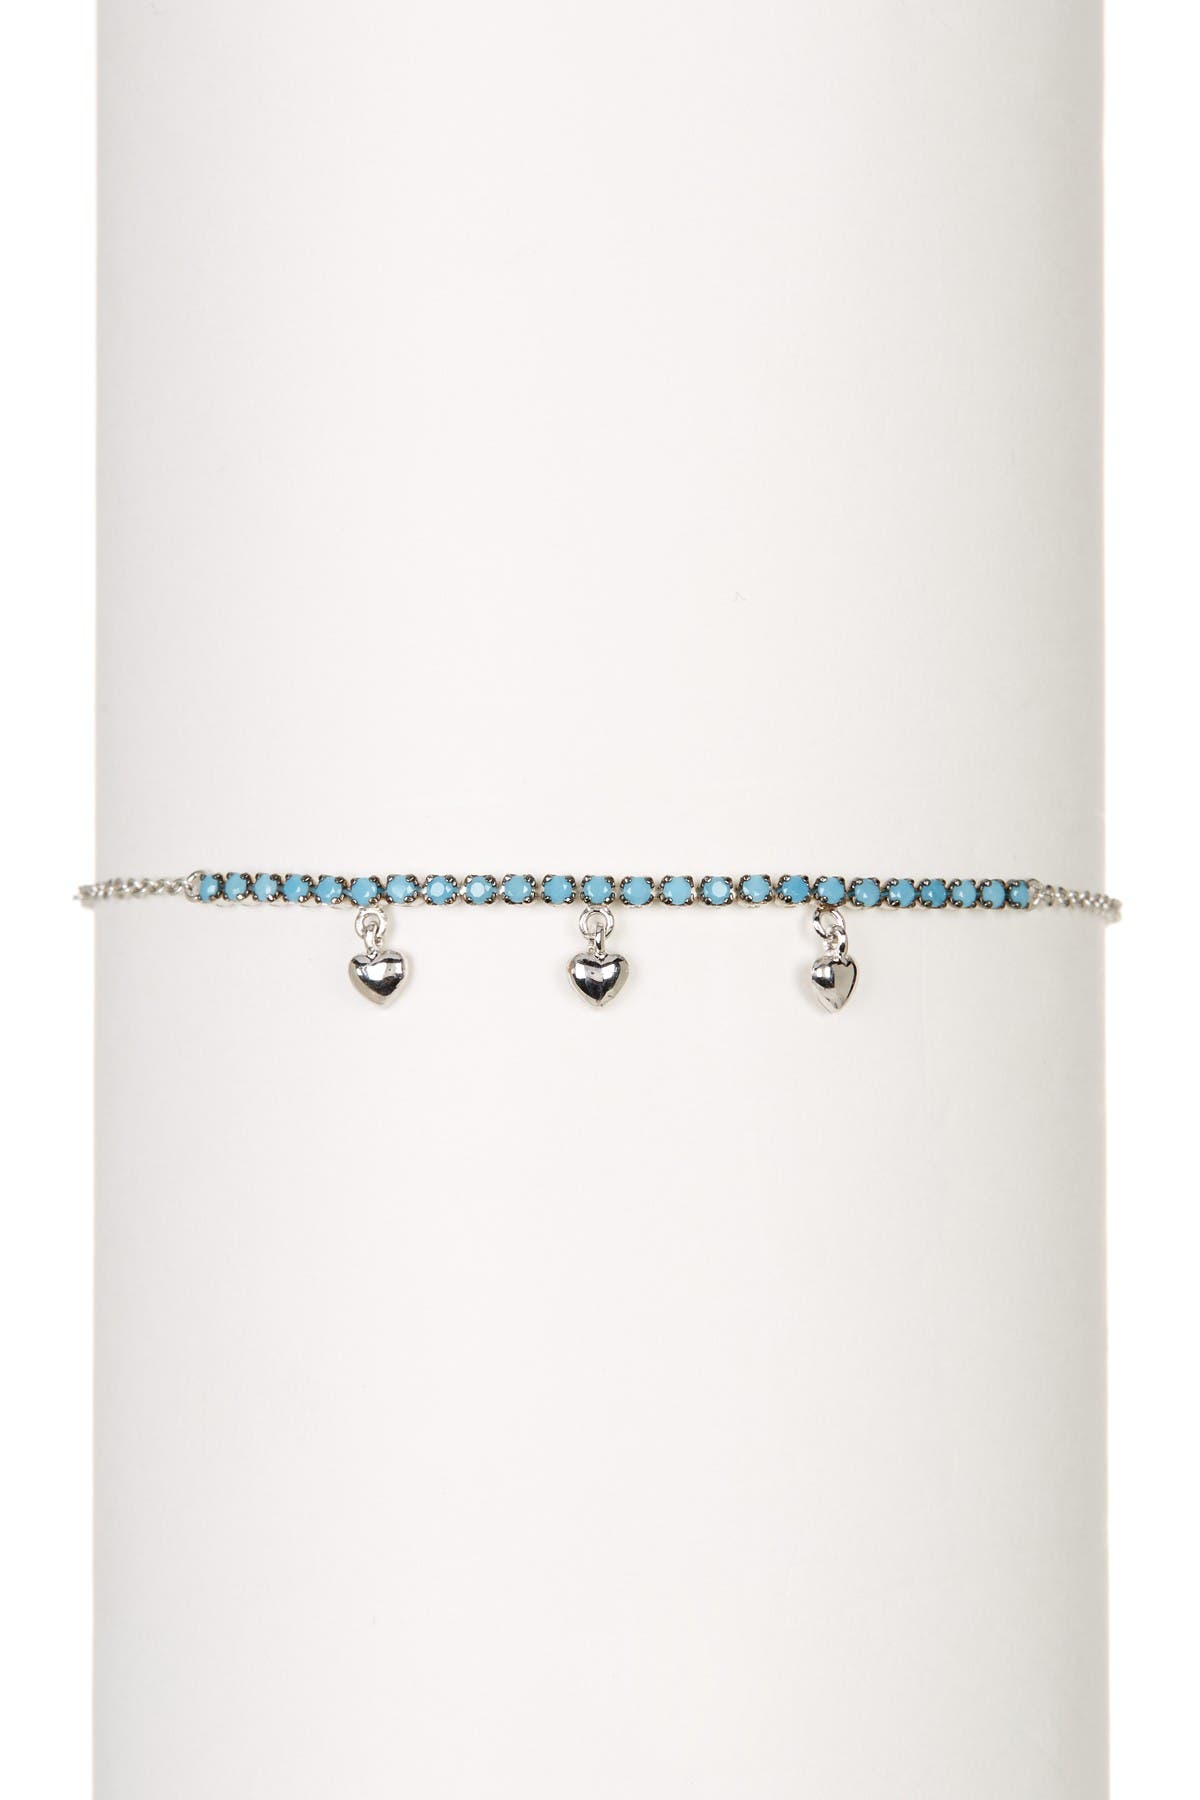 Image of ADORNIA Sterling Silver Turquoise Stone and Hanging Hearts Bracelet